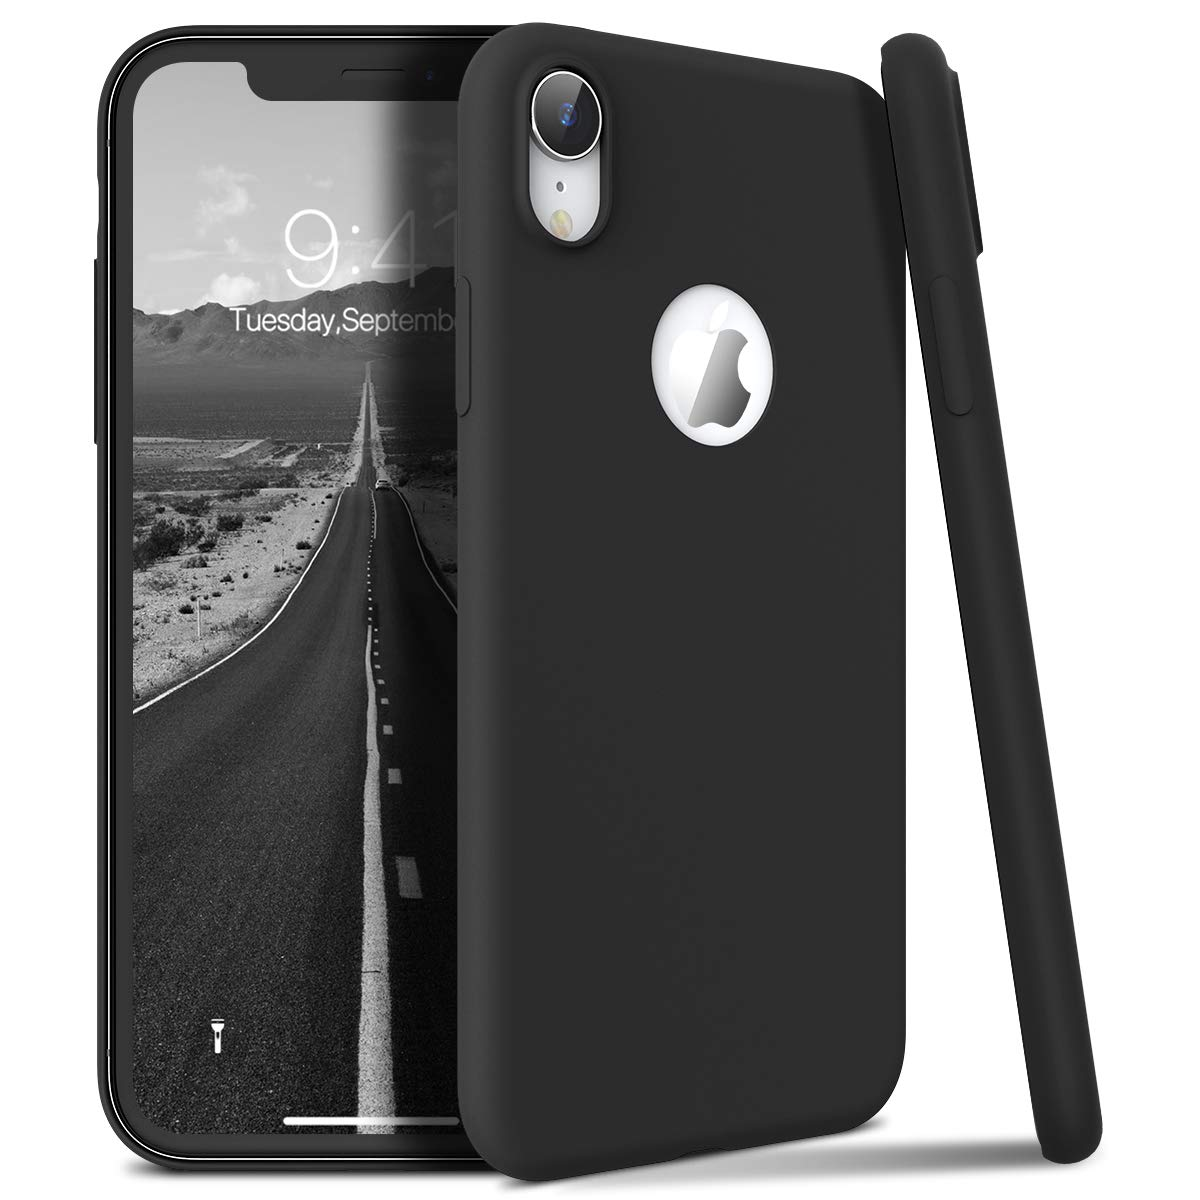 Winhoo Back Cover Case for iPhone XR Silicon Soft TPU Slim Matte Flexible Shockproof Gel Rubber Ultra Thin Candy Back Cover Case - Black (B07SNHJ8GP) Amazon Price History, Amazon Price Tracker